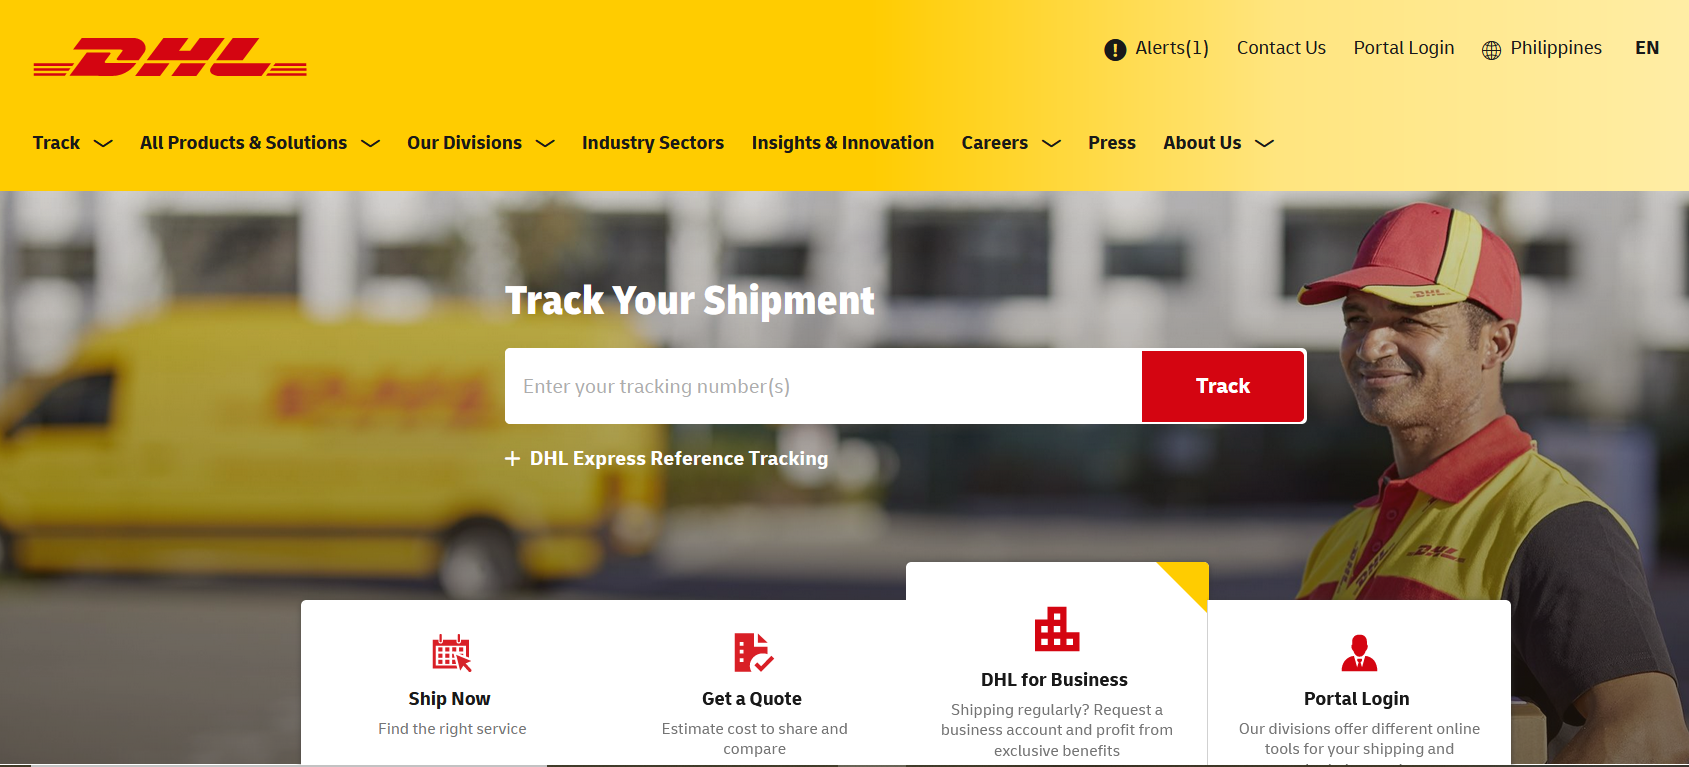 courier services in the philippines - DHL